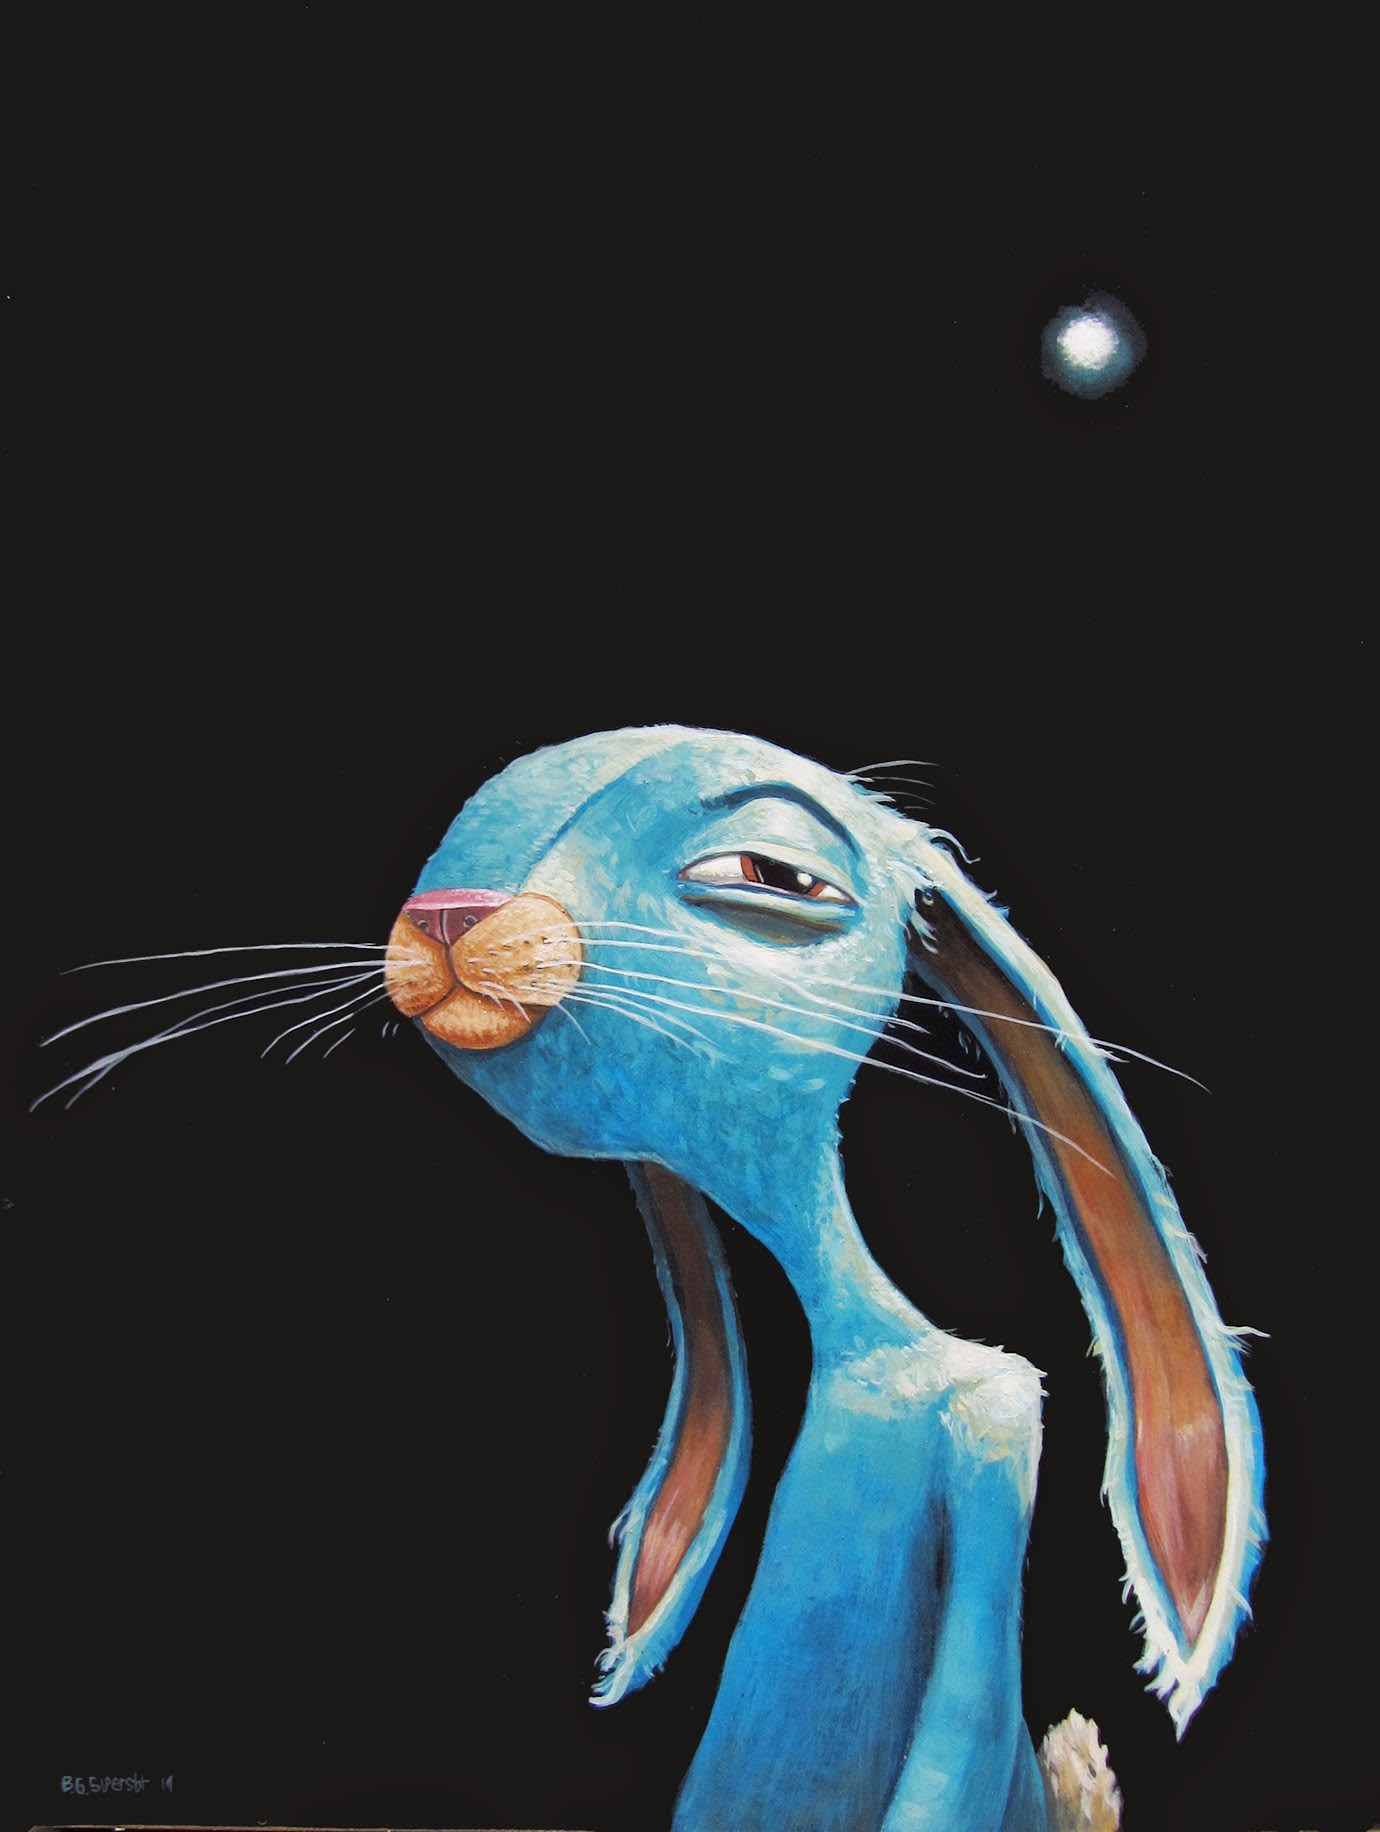 Painting of a blue rabbit squinting under a dark sky with a full moon, painting, artwork, art, creativity, bunny, Brett Superstar, adidas, employee